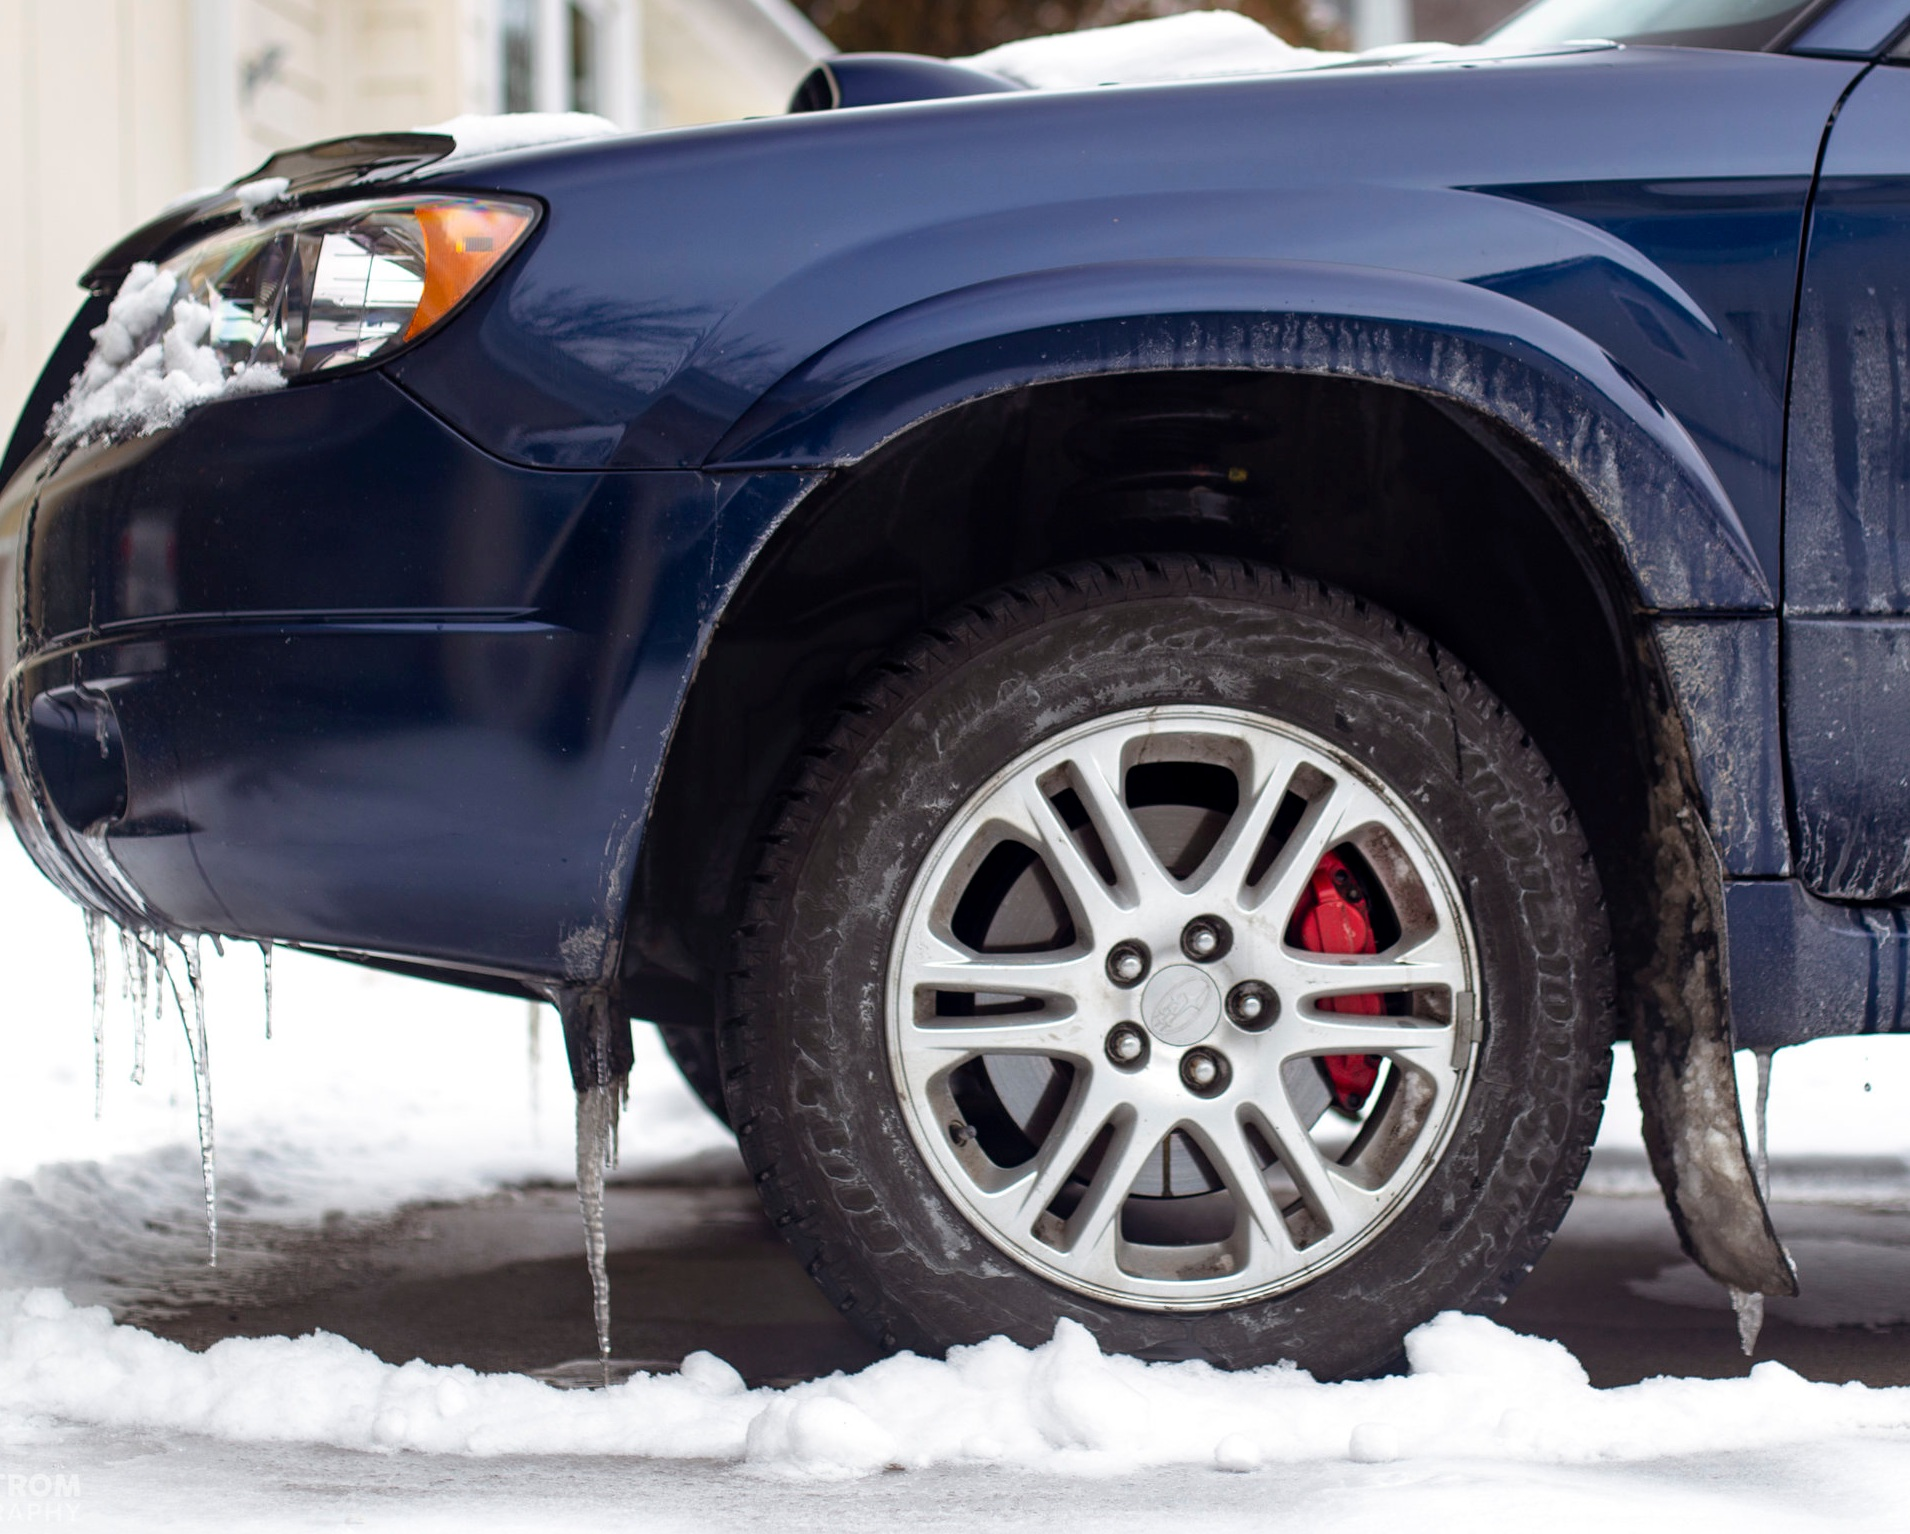 Wheels and tires make a huge difference to your car. The right lug nuts can help further the updated look!